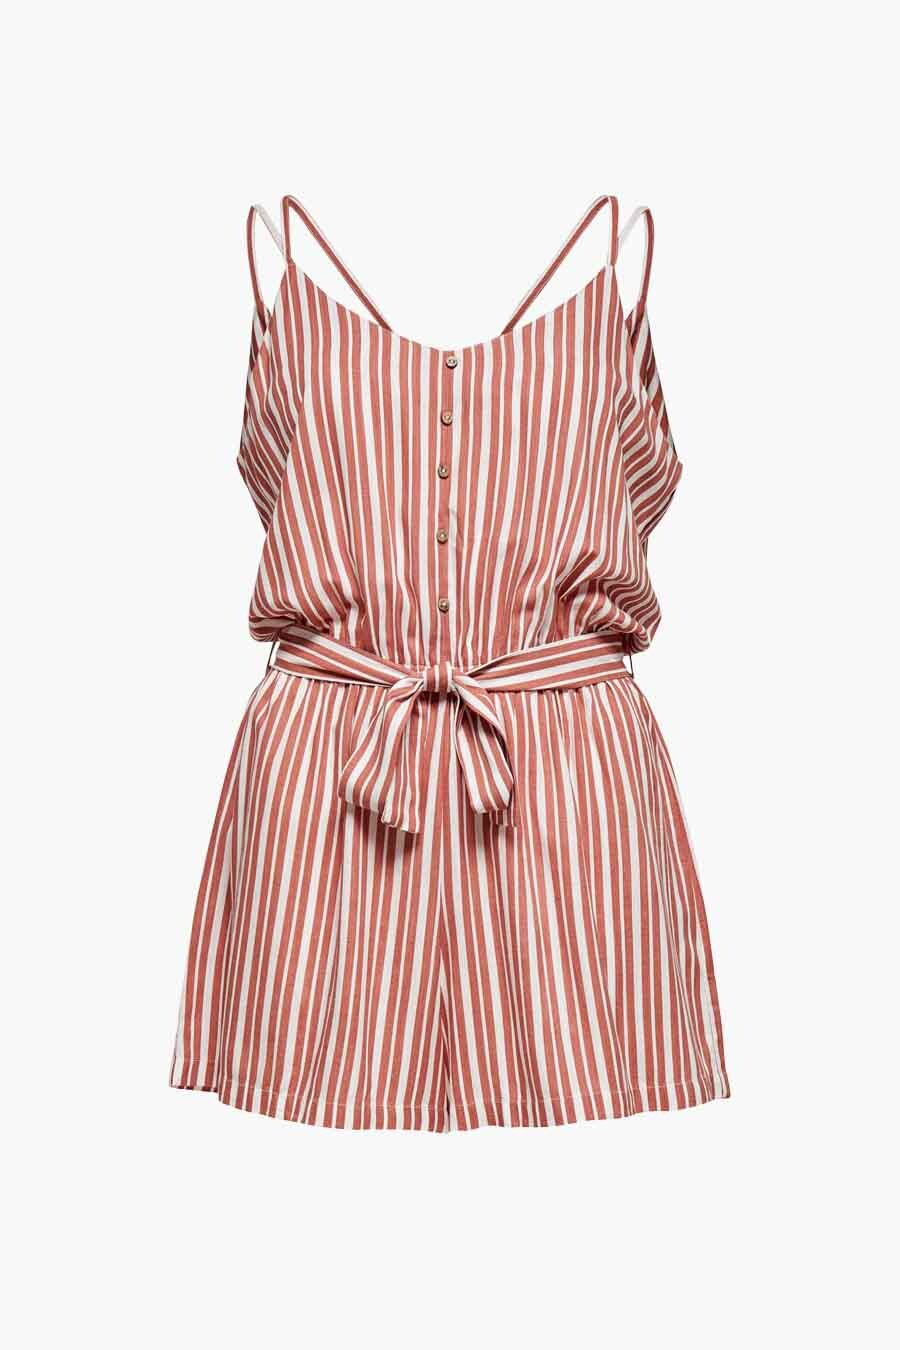 ONLY® Playsuit, Multicolor, Dames, Maat: 36/40/42/44